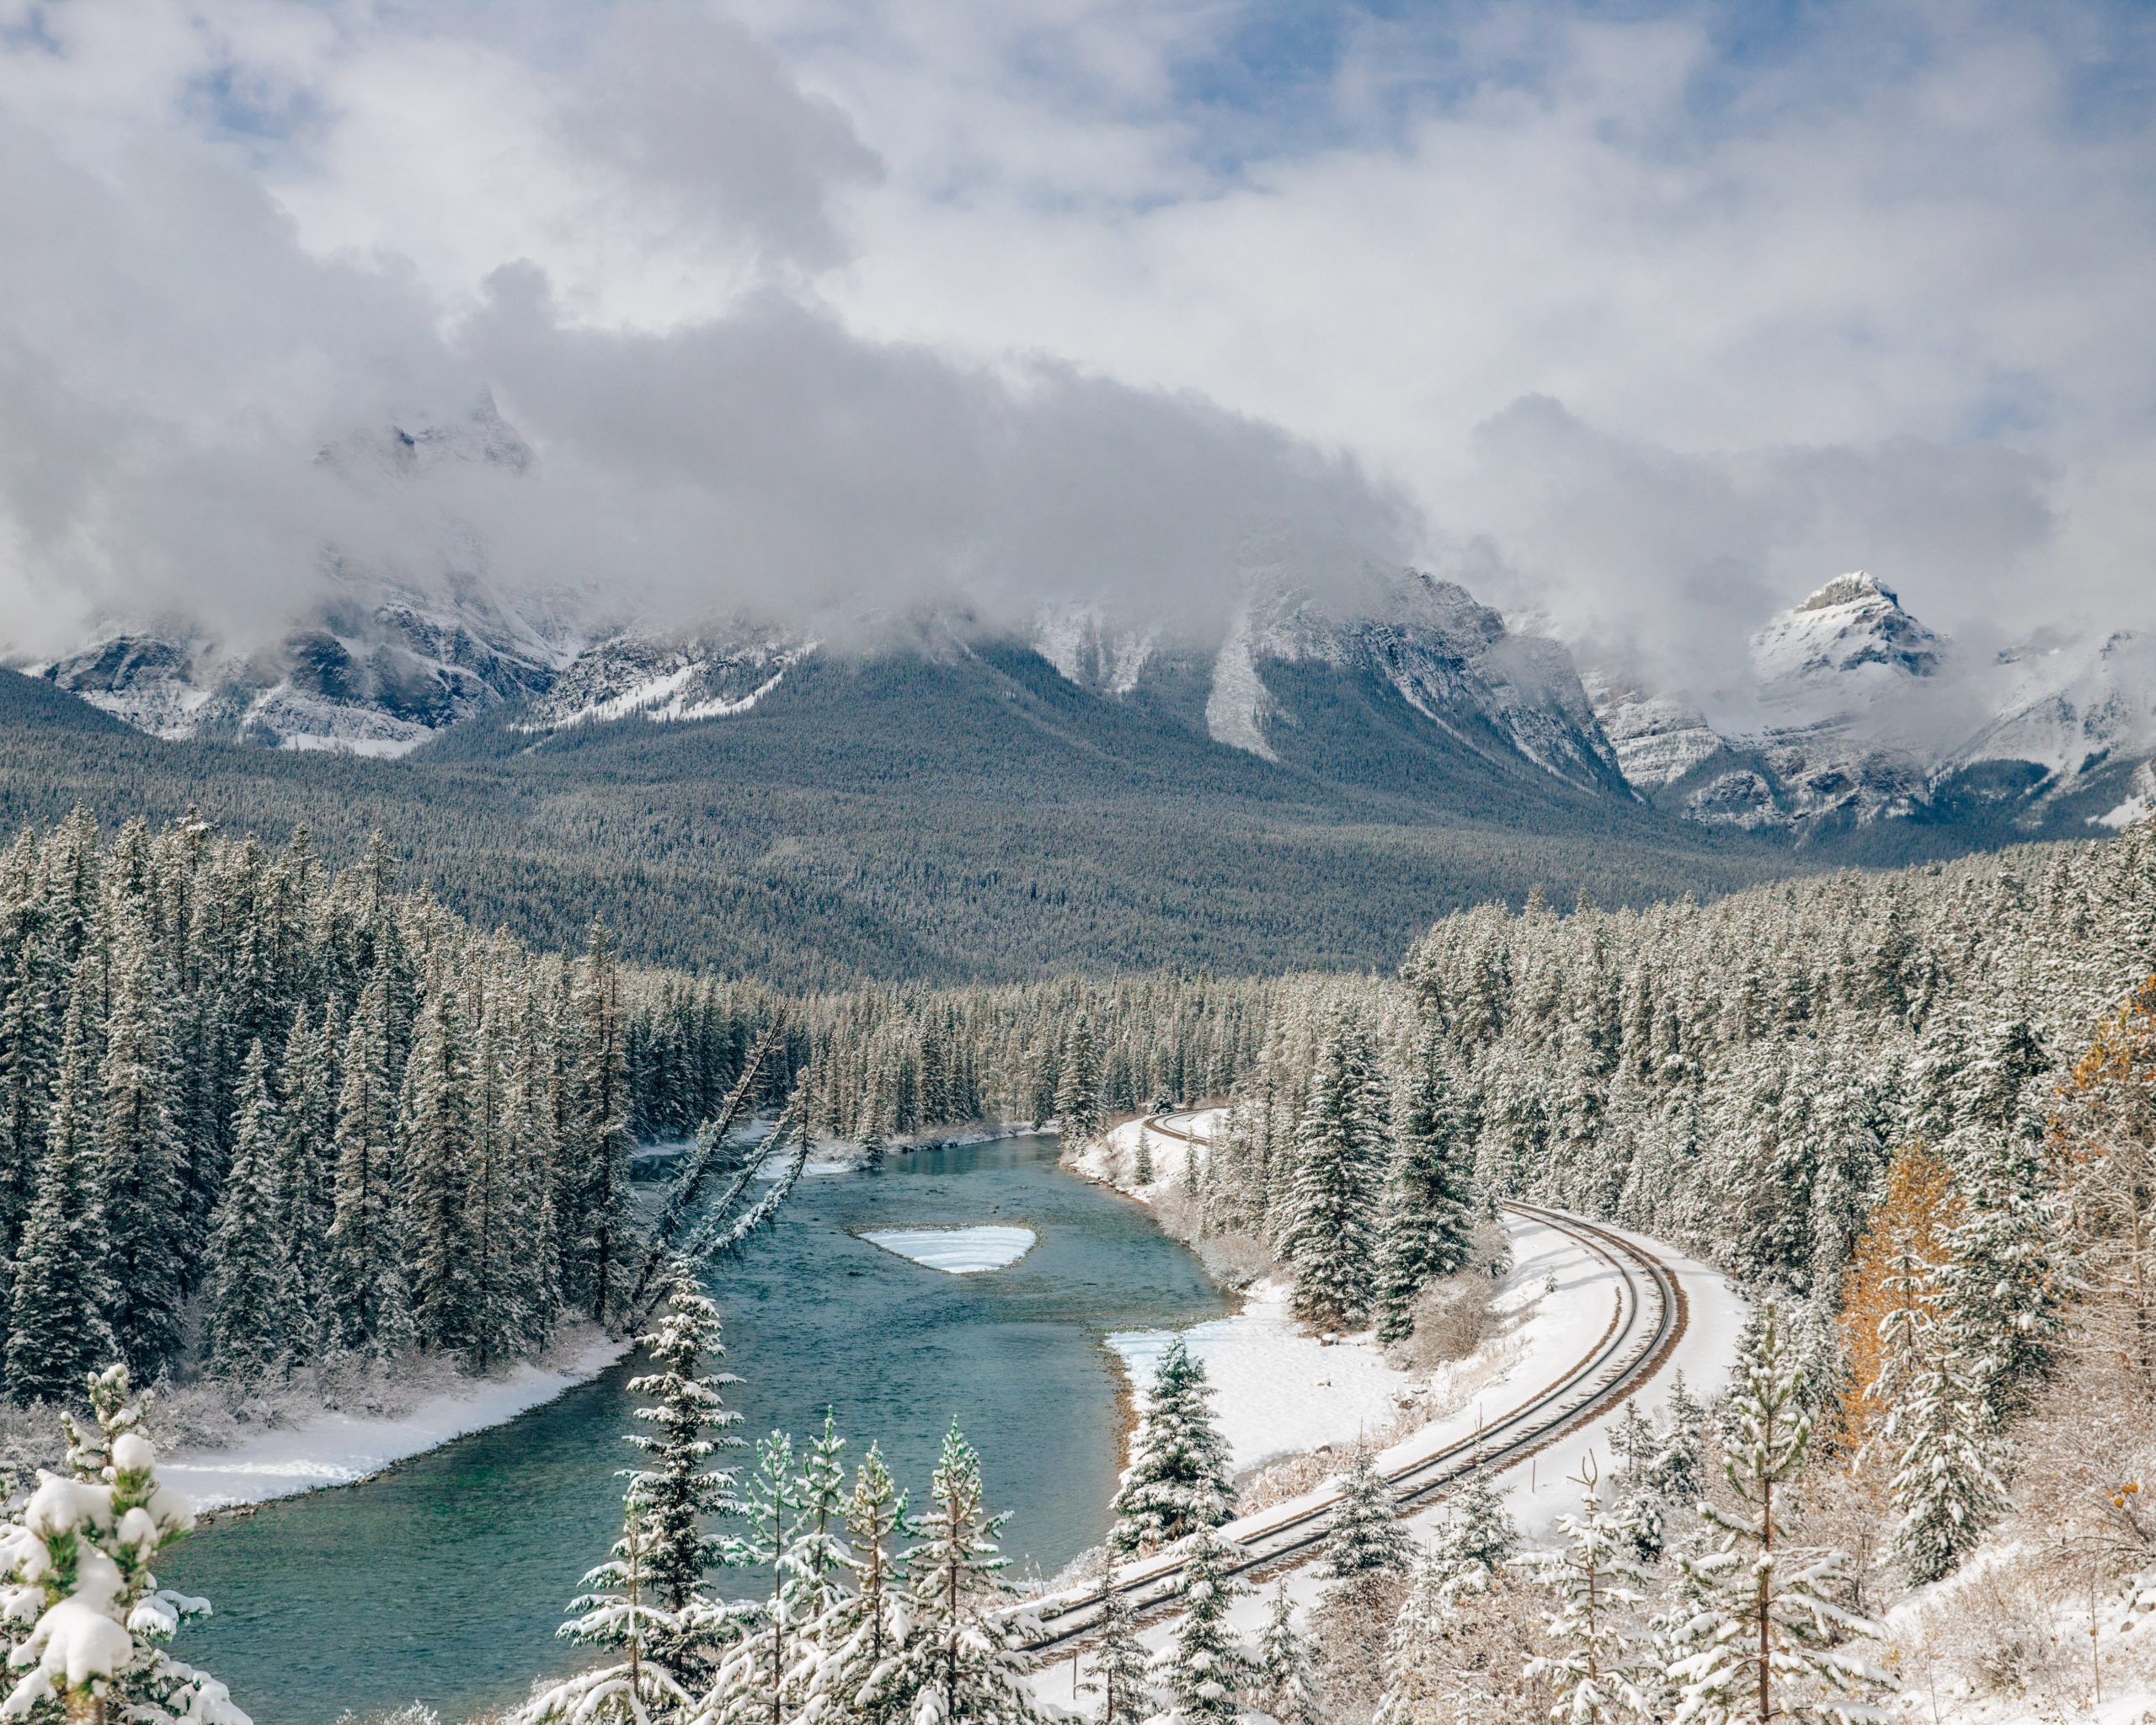 View of Morant's Curve Banff National Park